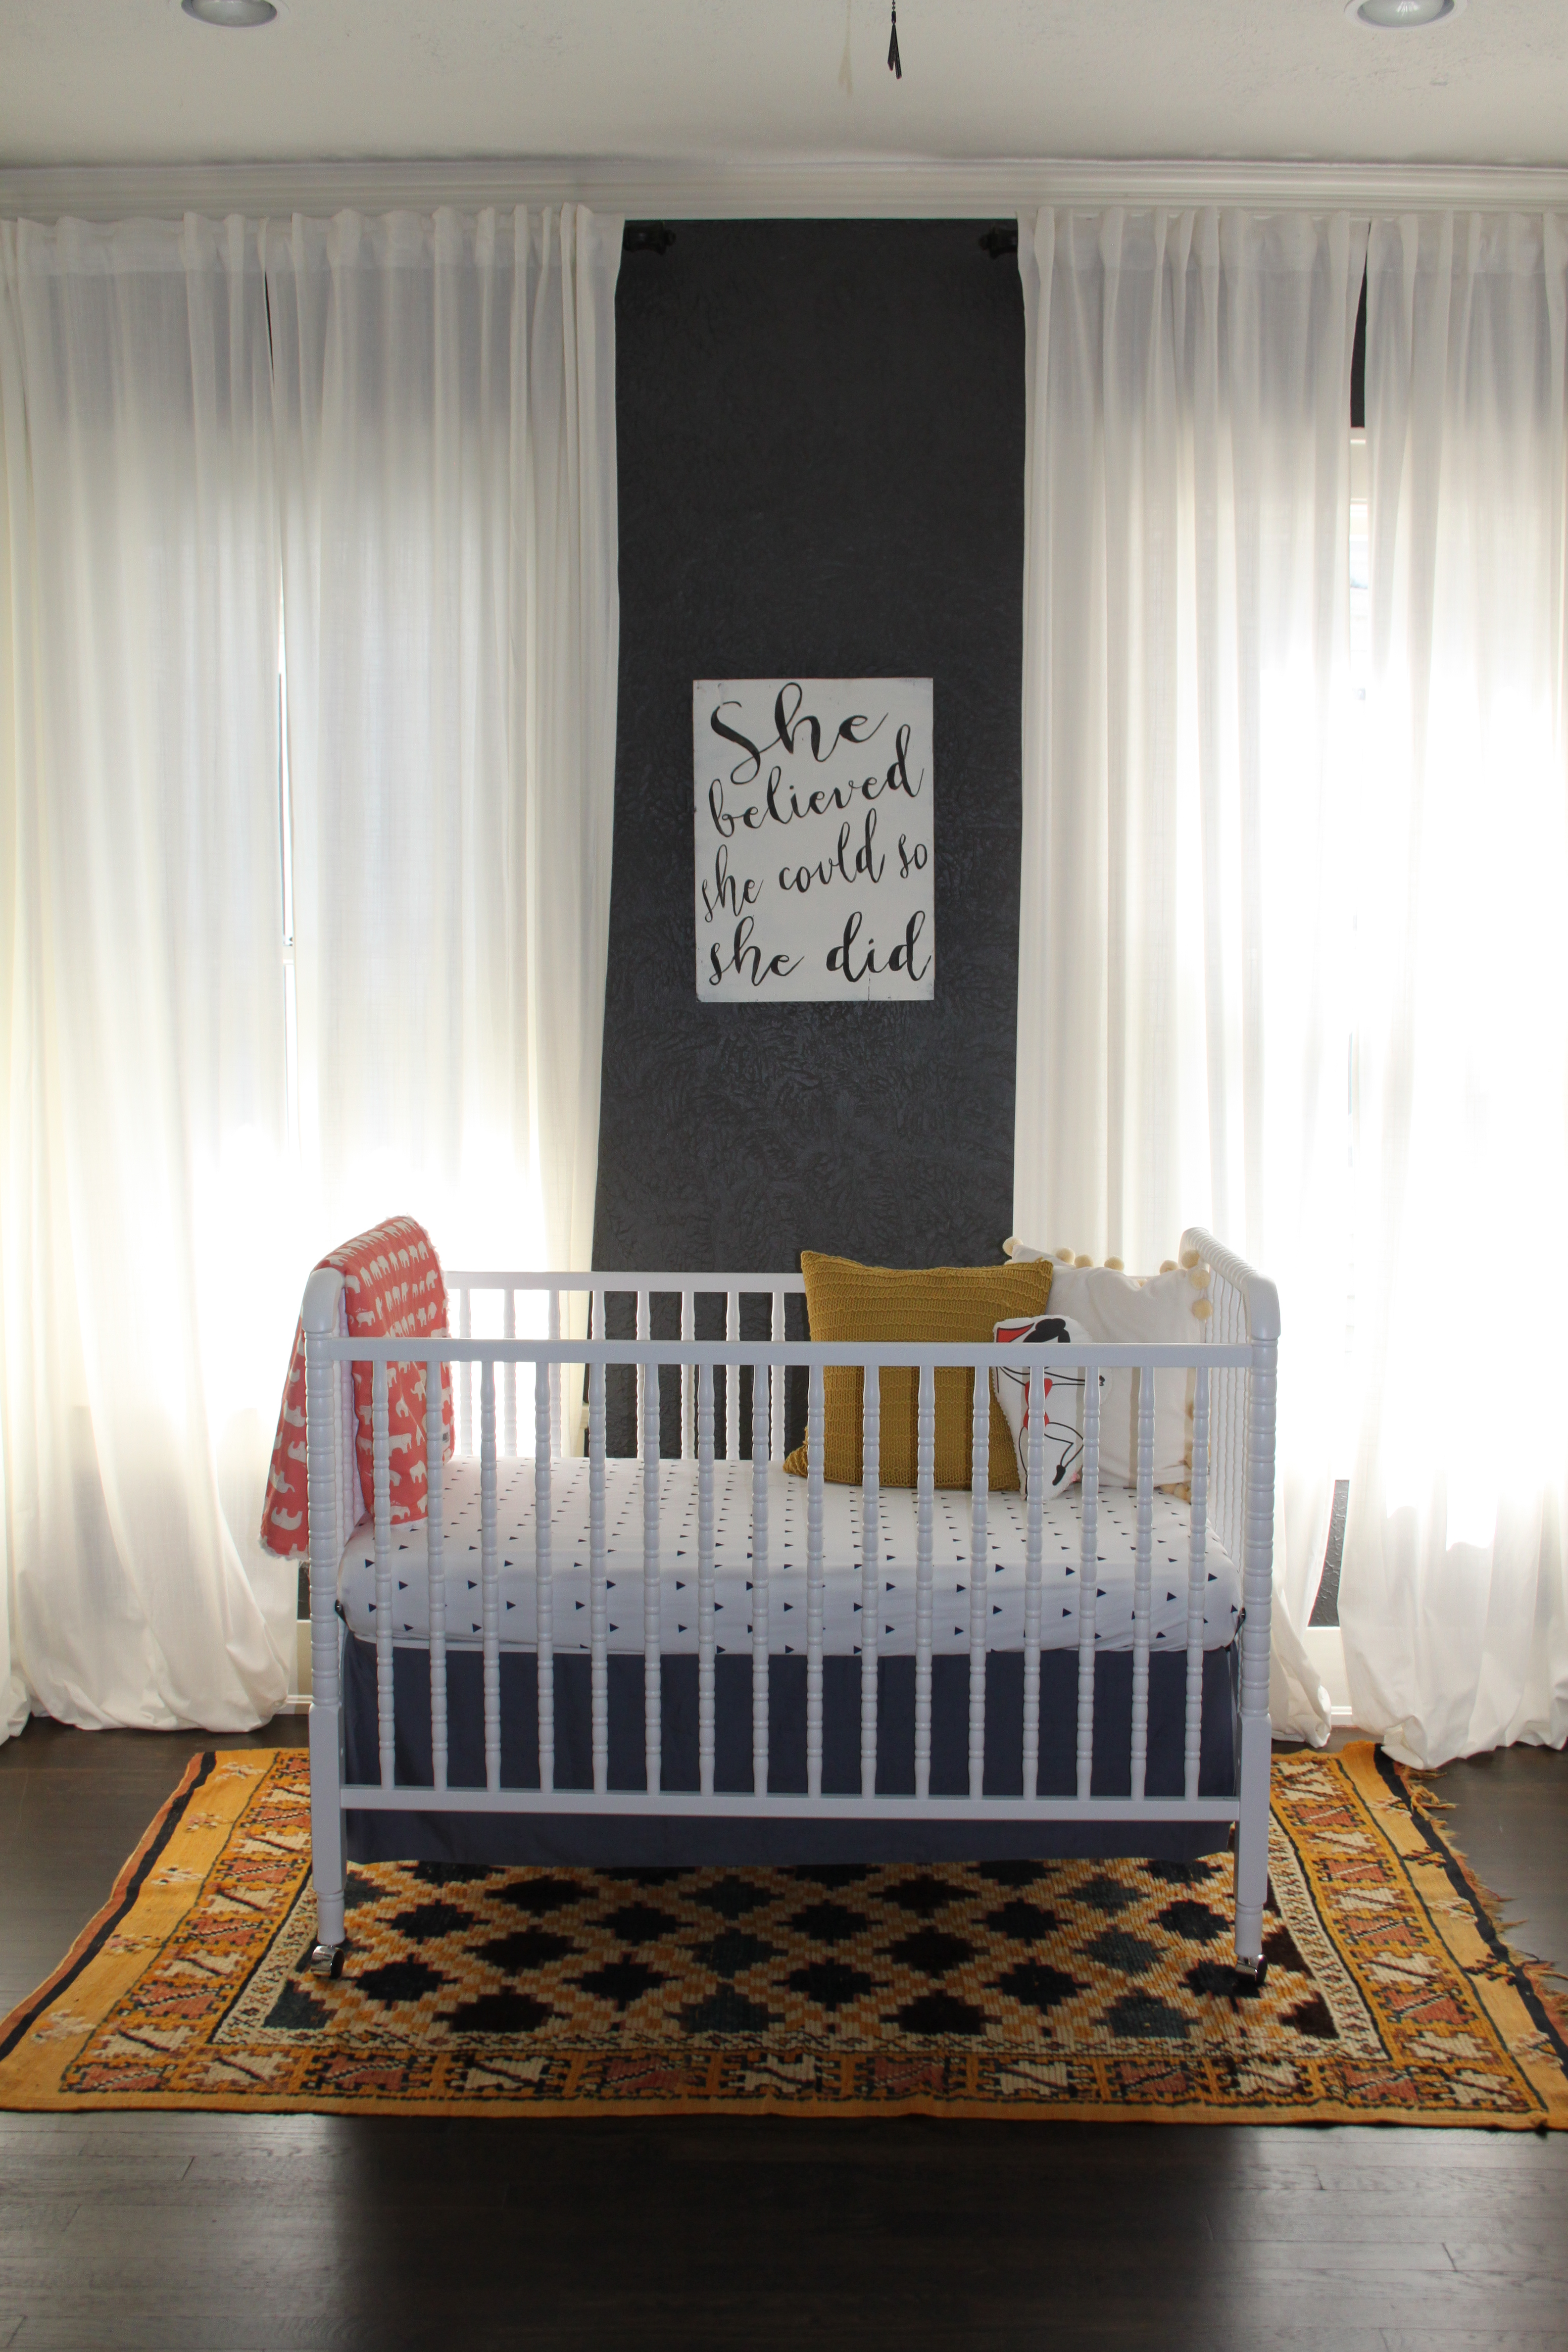 Jenny lind crib for sale - Crib For Sale Dallas Jenny Lind Crib Vintage Rug From Morocco Elephant Blanket From Madly